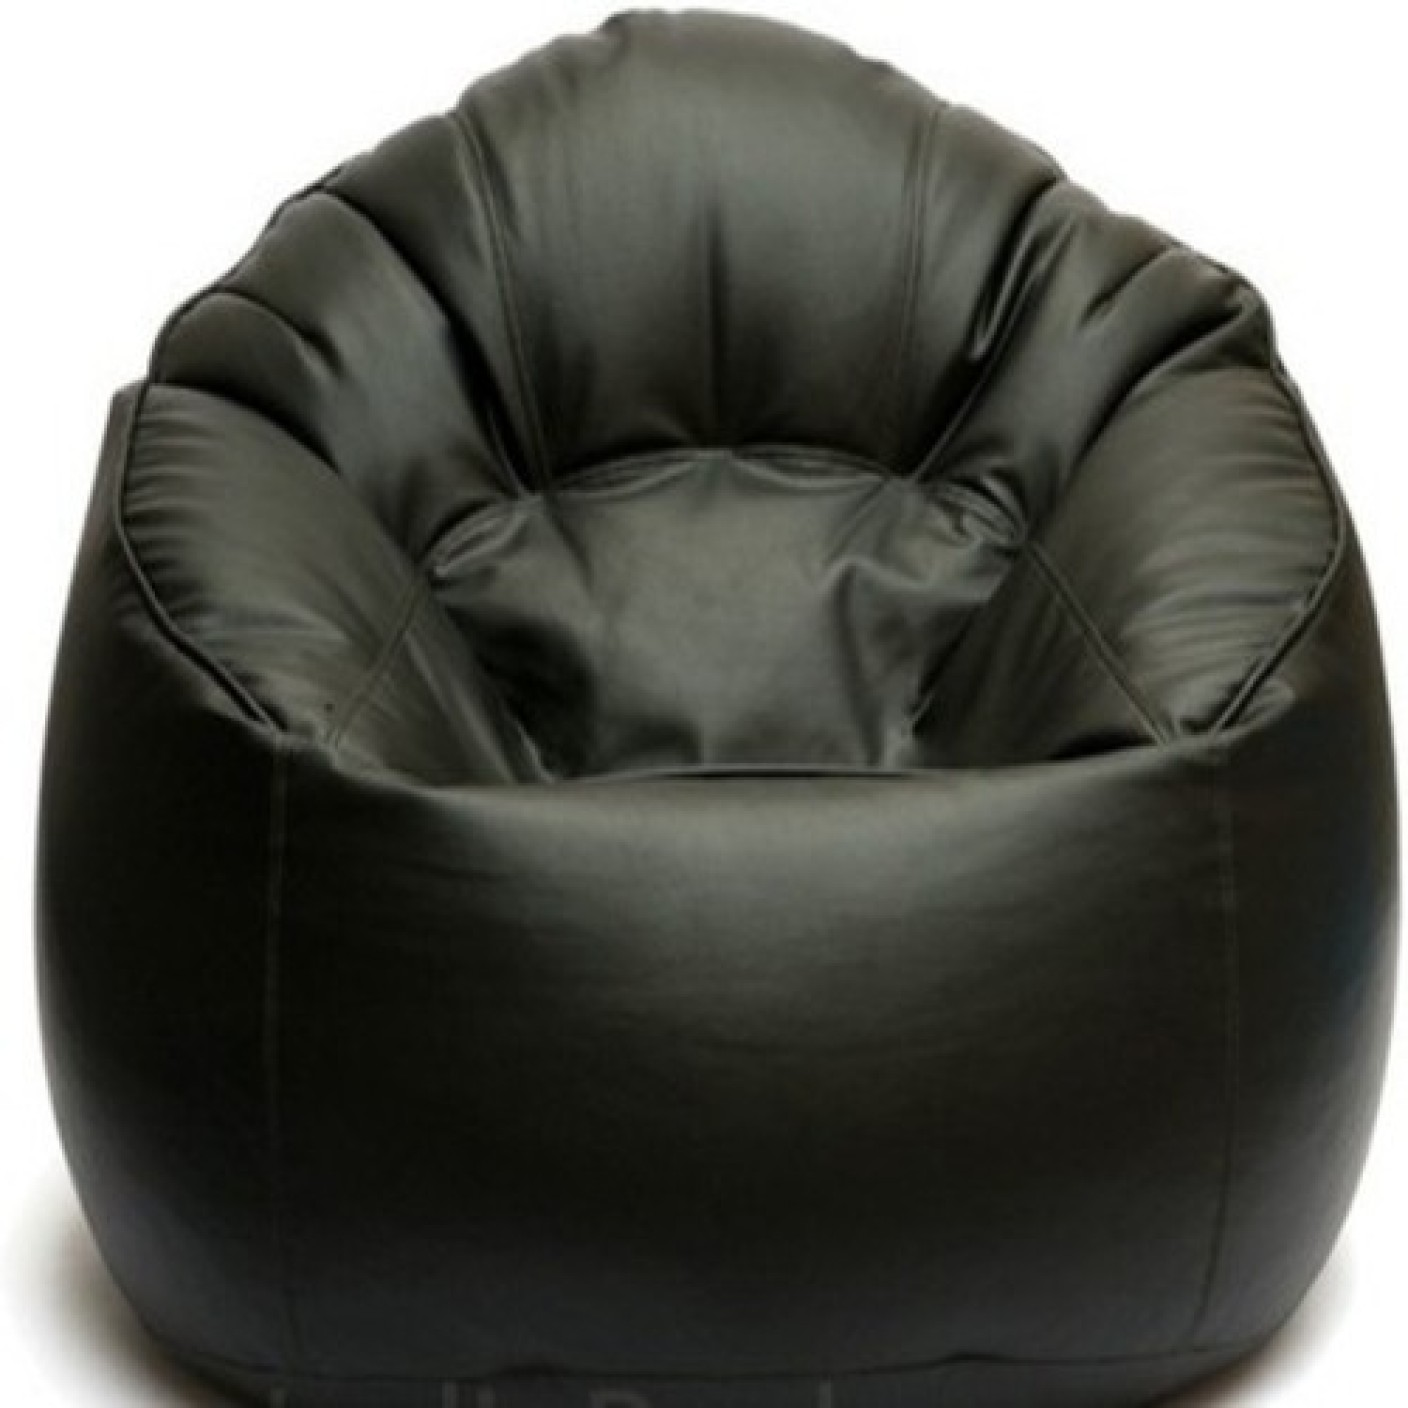 MrLazy XXXL Bean Bag Cover Without Beans Price In India